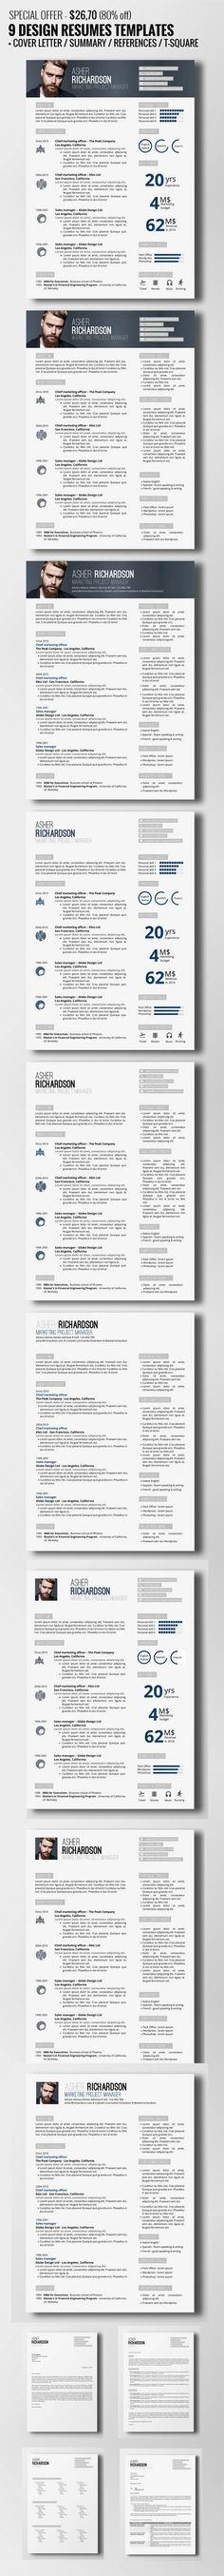 435 best Resume images on Pinterest Resume design, Design resume - professional resume fonts